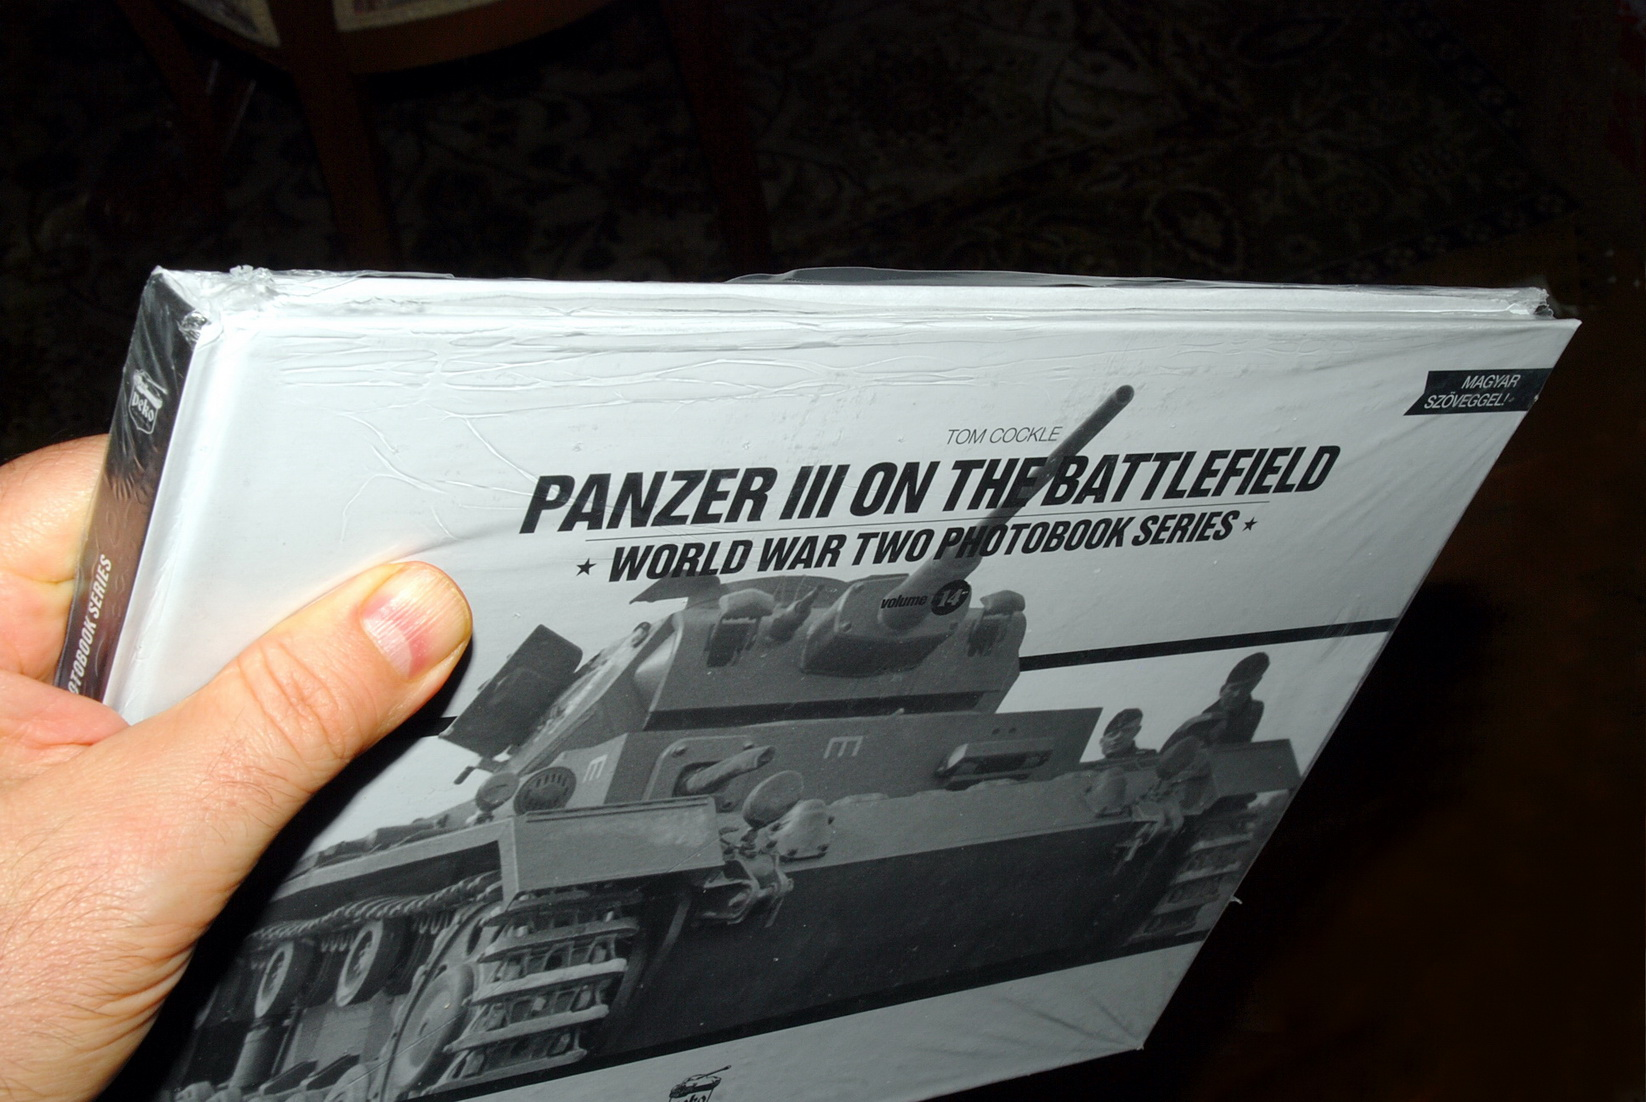 Panzer III On The Battlefield, WWII Photobook Series Vol.14, by Tom Cockle (Peko Publishing)